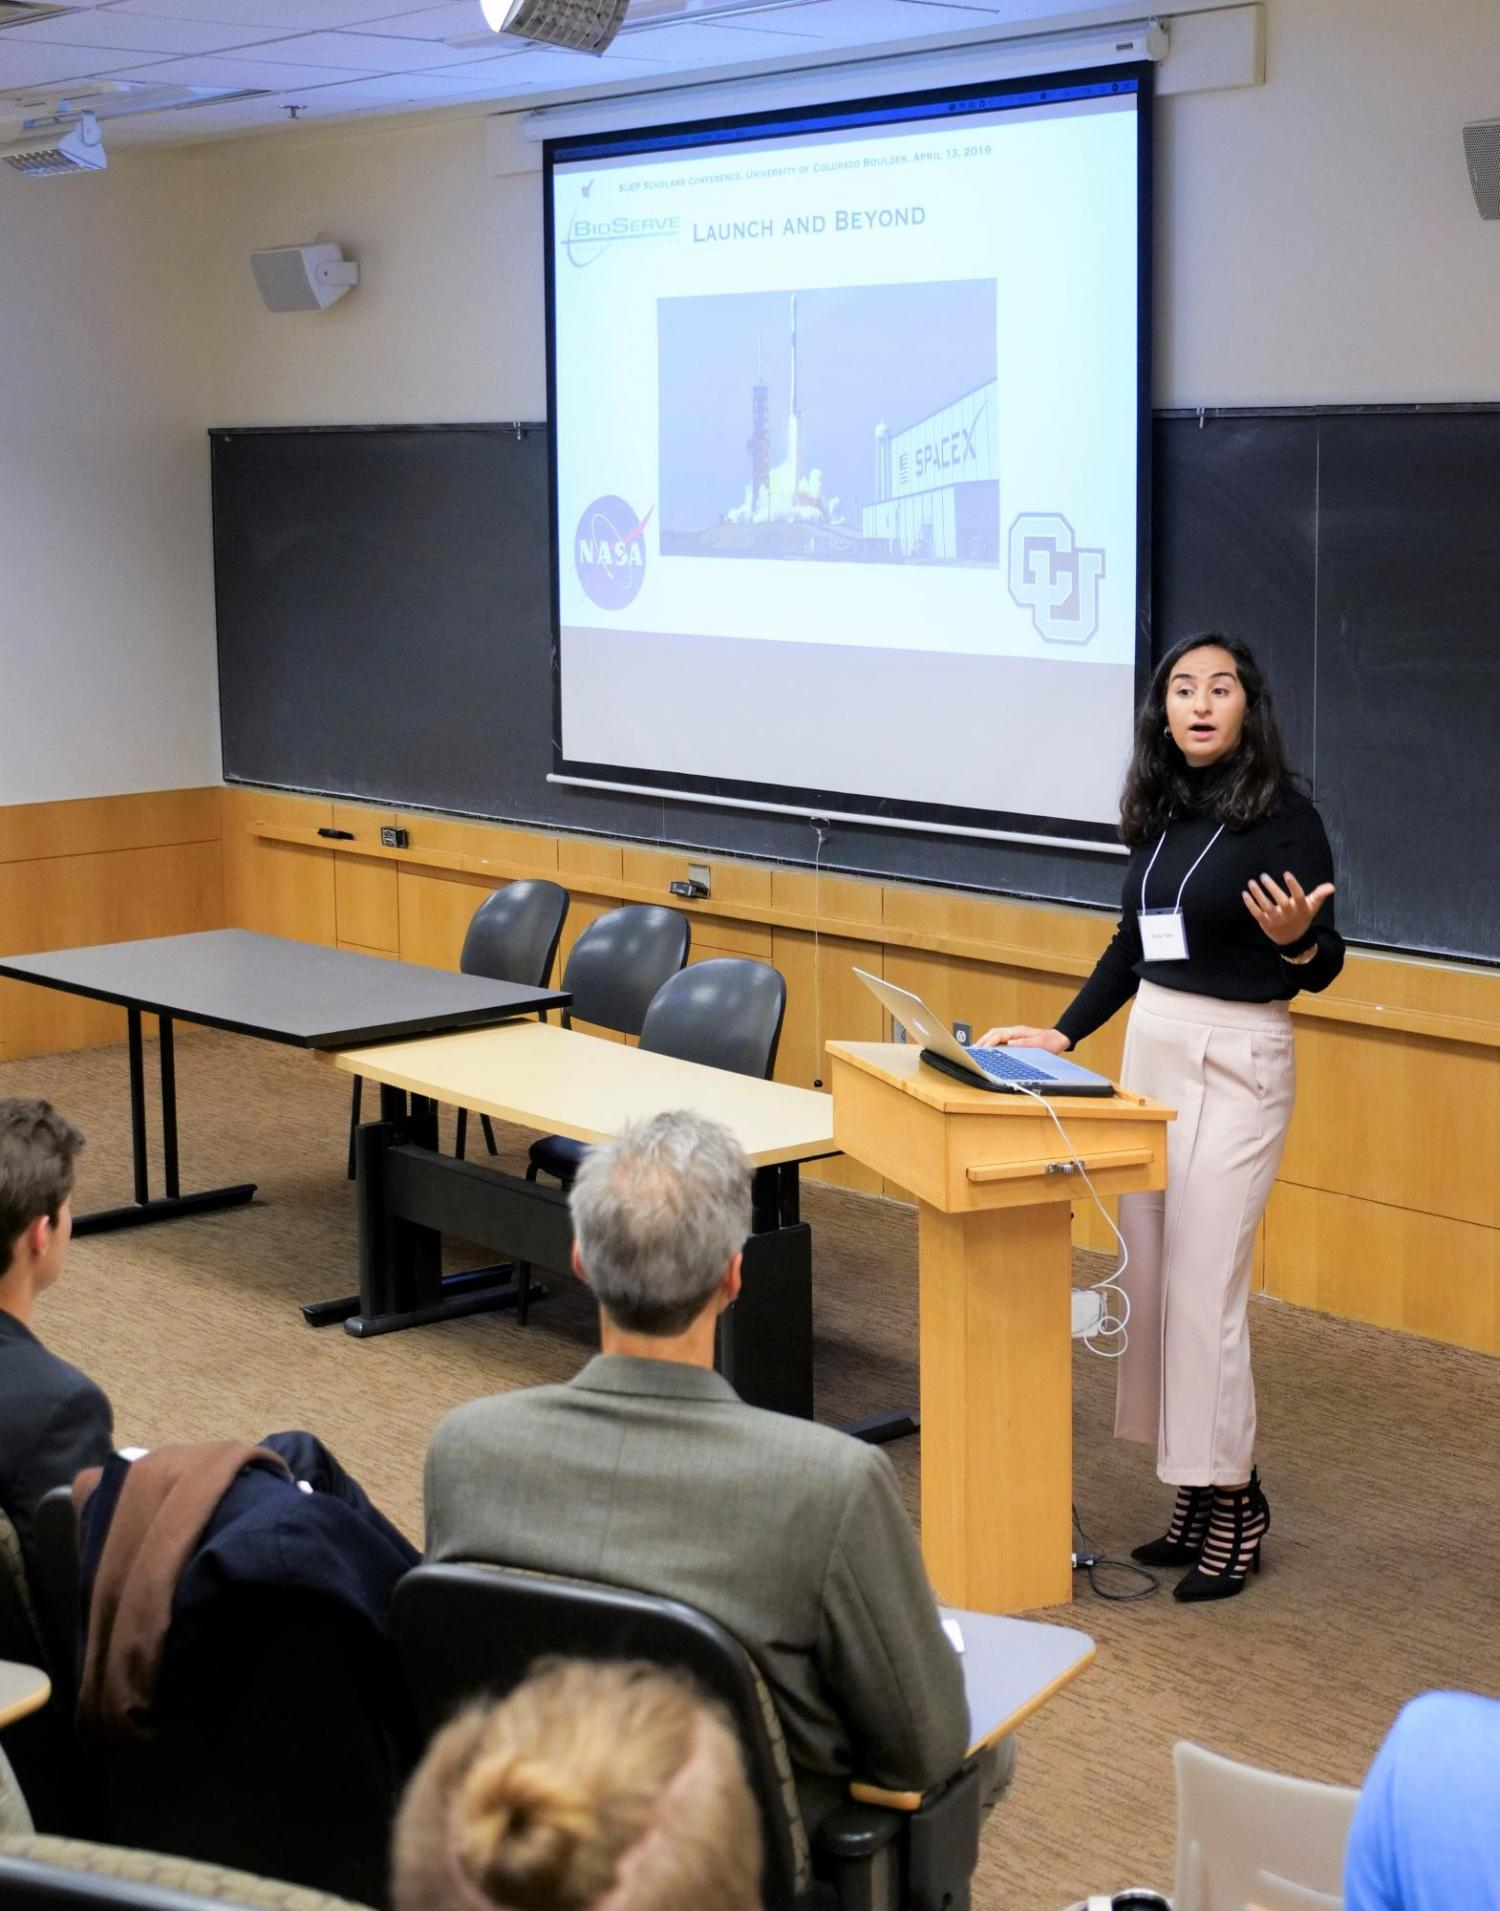 Norlin Scholar Zeena Nisar Presenting at the Annual Norlin Scholars Conference